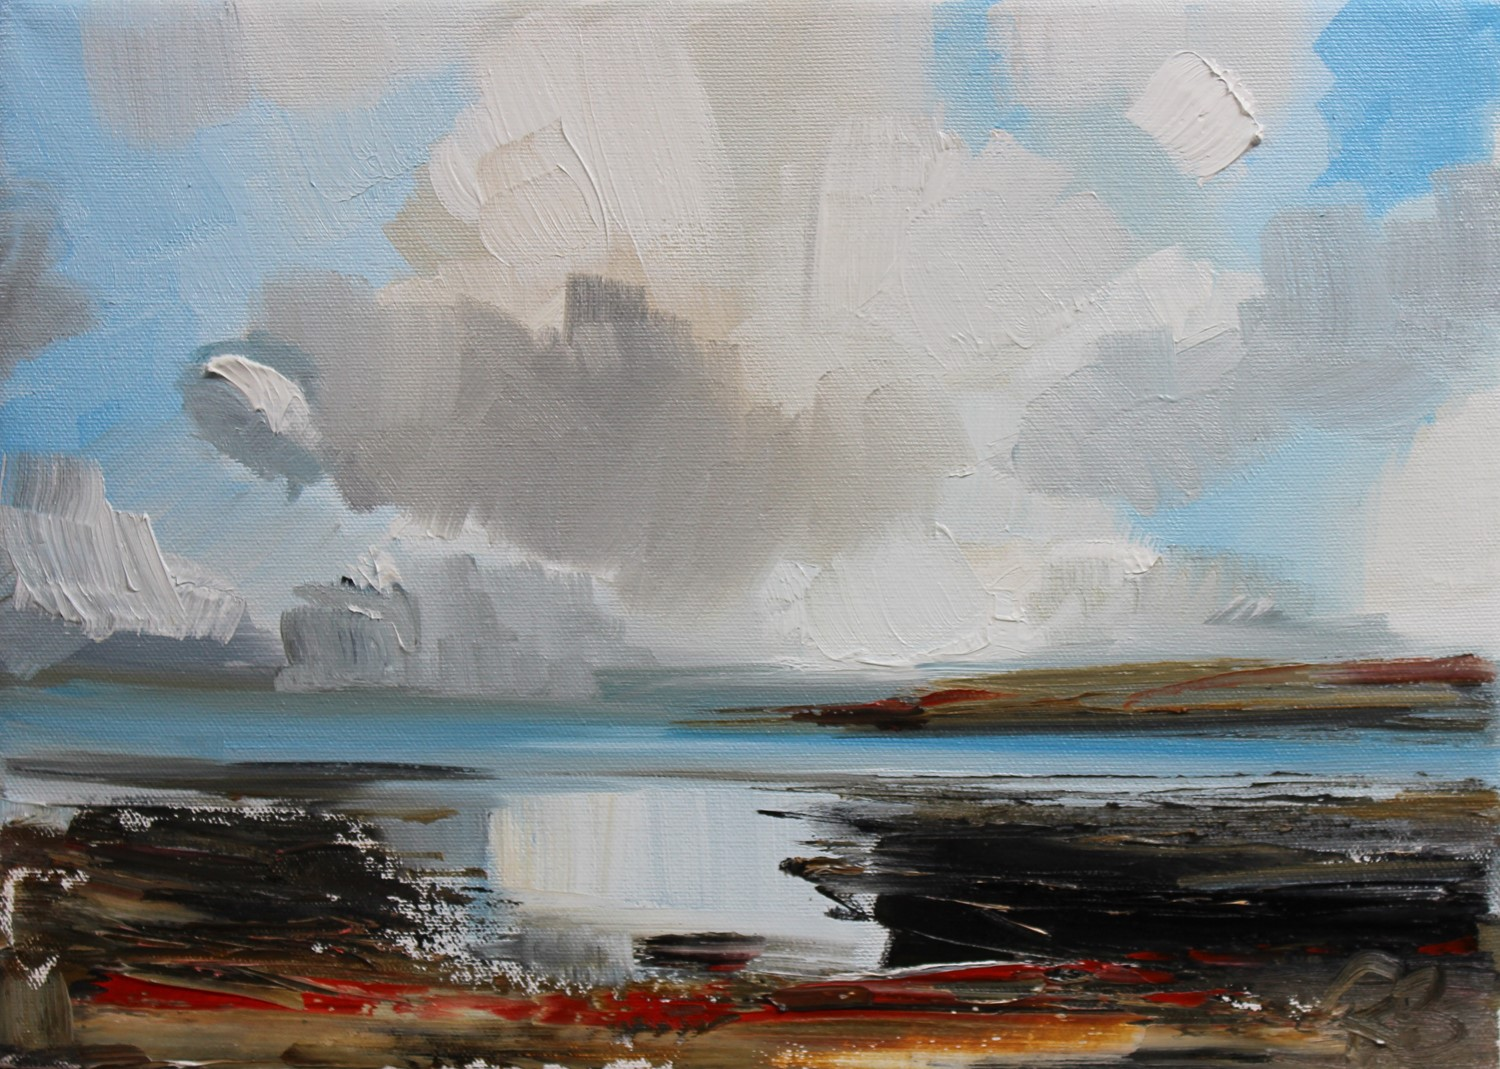 'Fleeting clouds and shore reflections' by artist Rosanne Barr